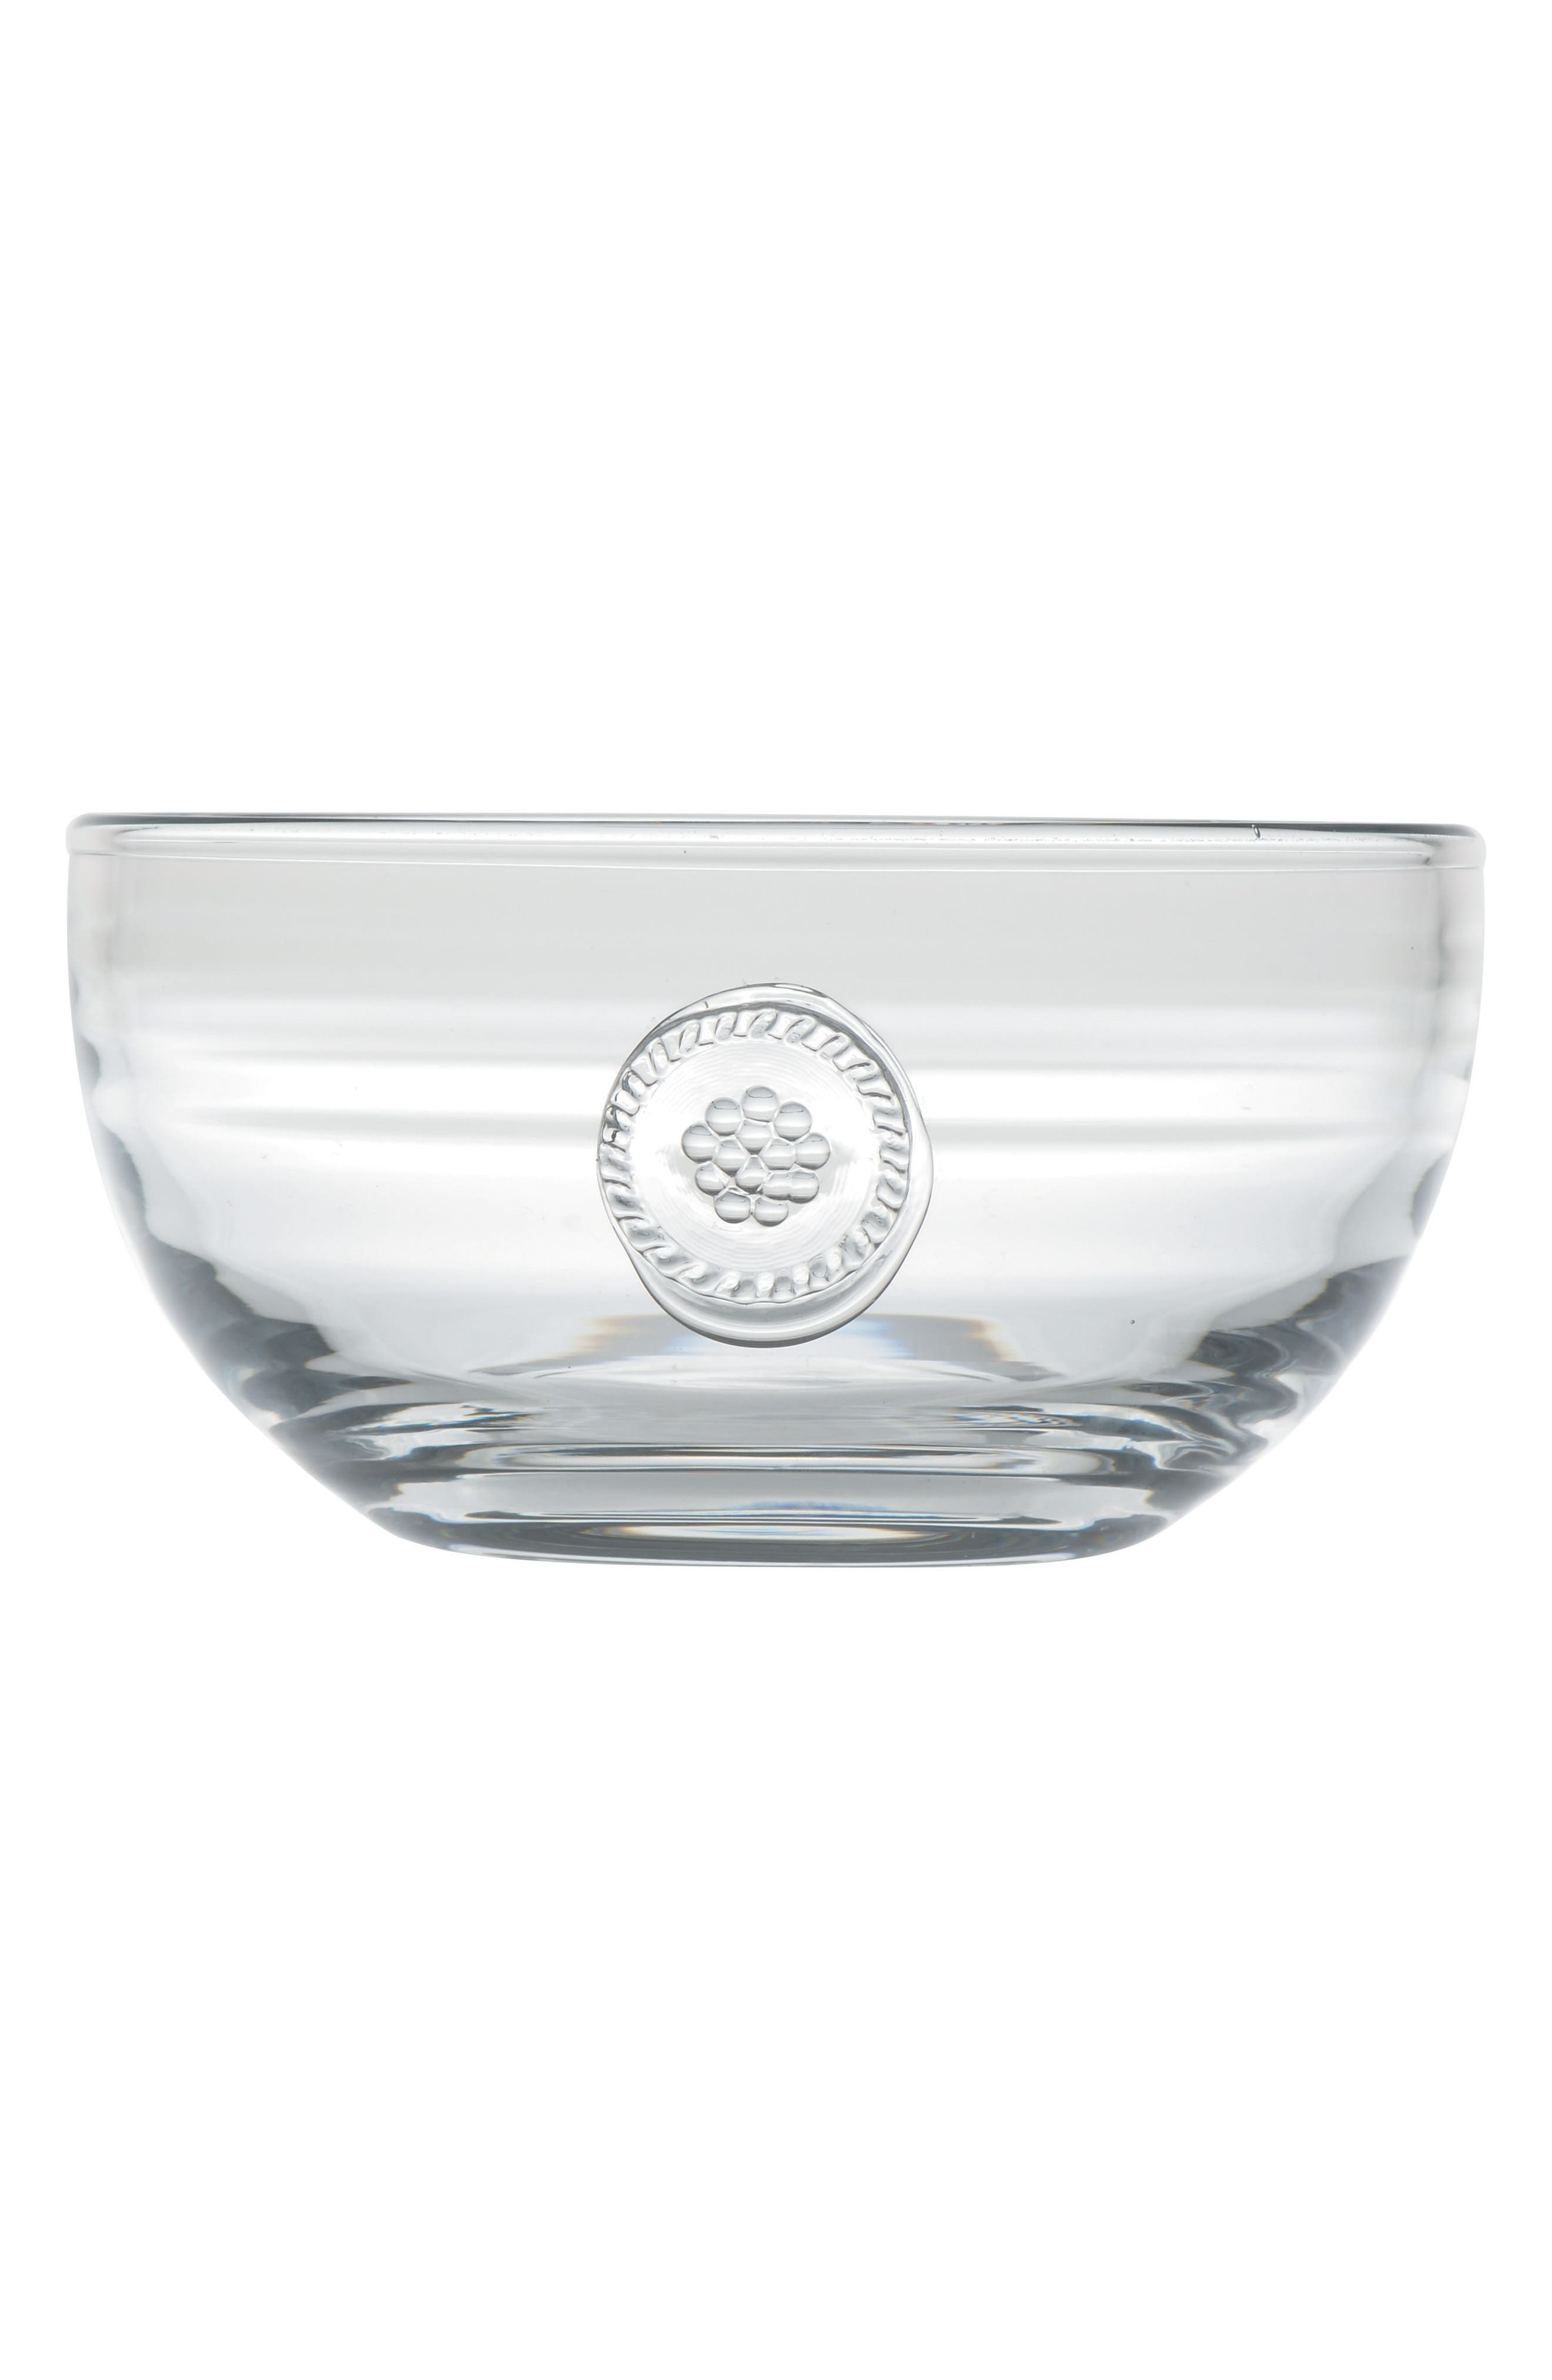 Berry & Thread Small Glass Bowl,                             Alternate thumbnail 2, color,                             CLEAR